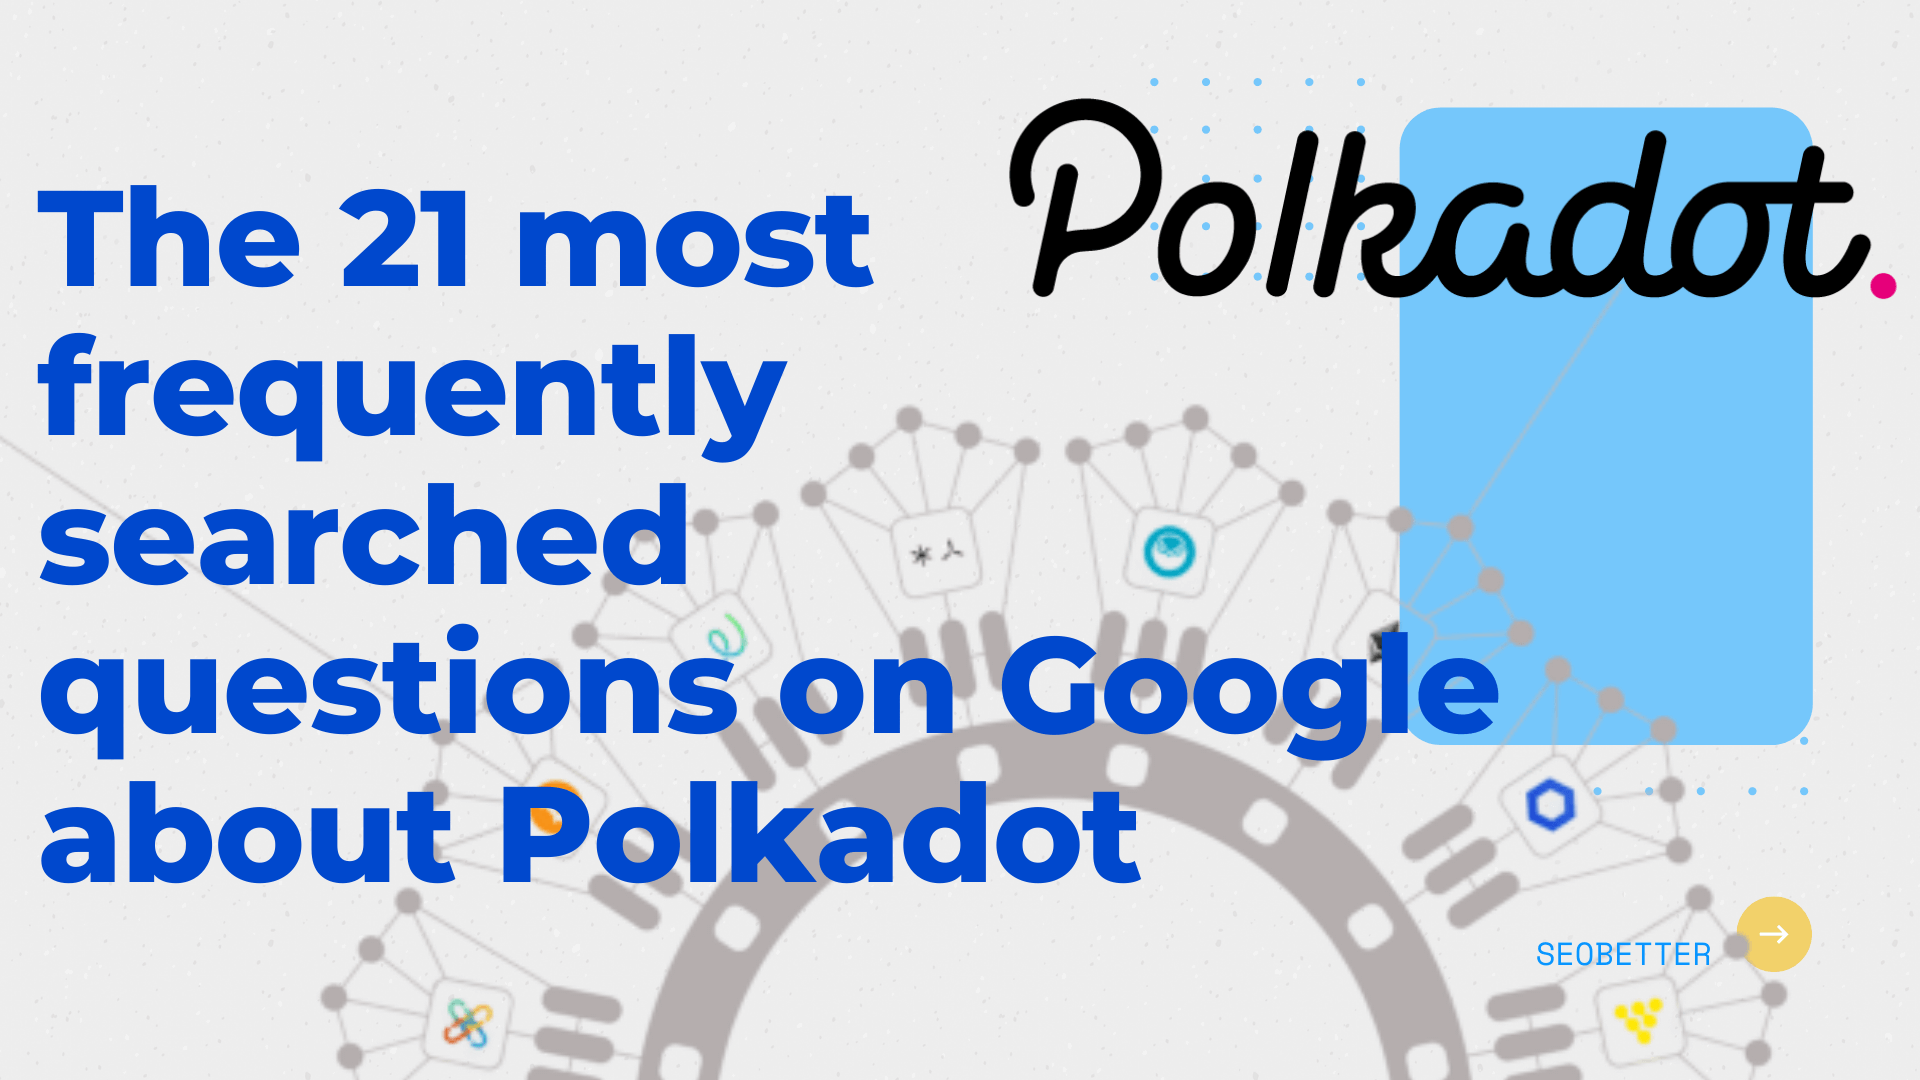 What is Polkadot coin?